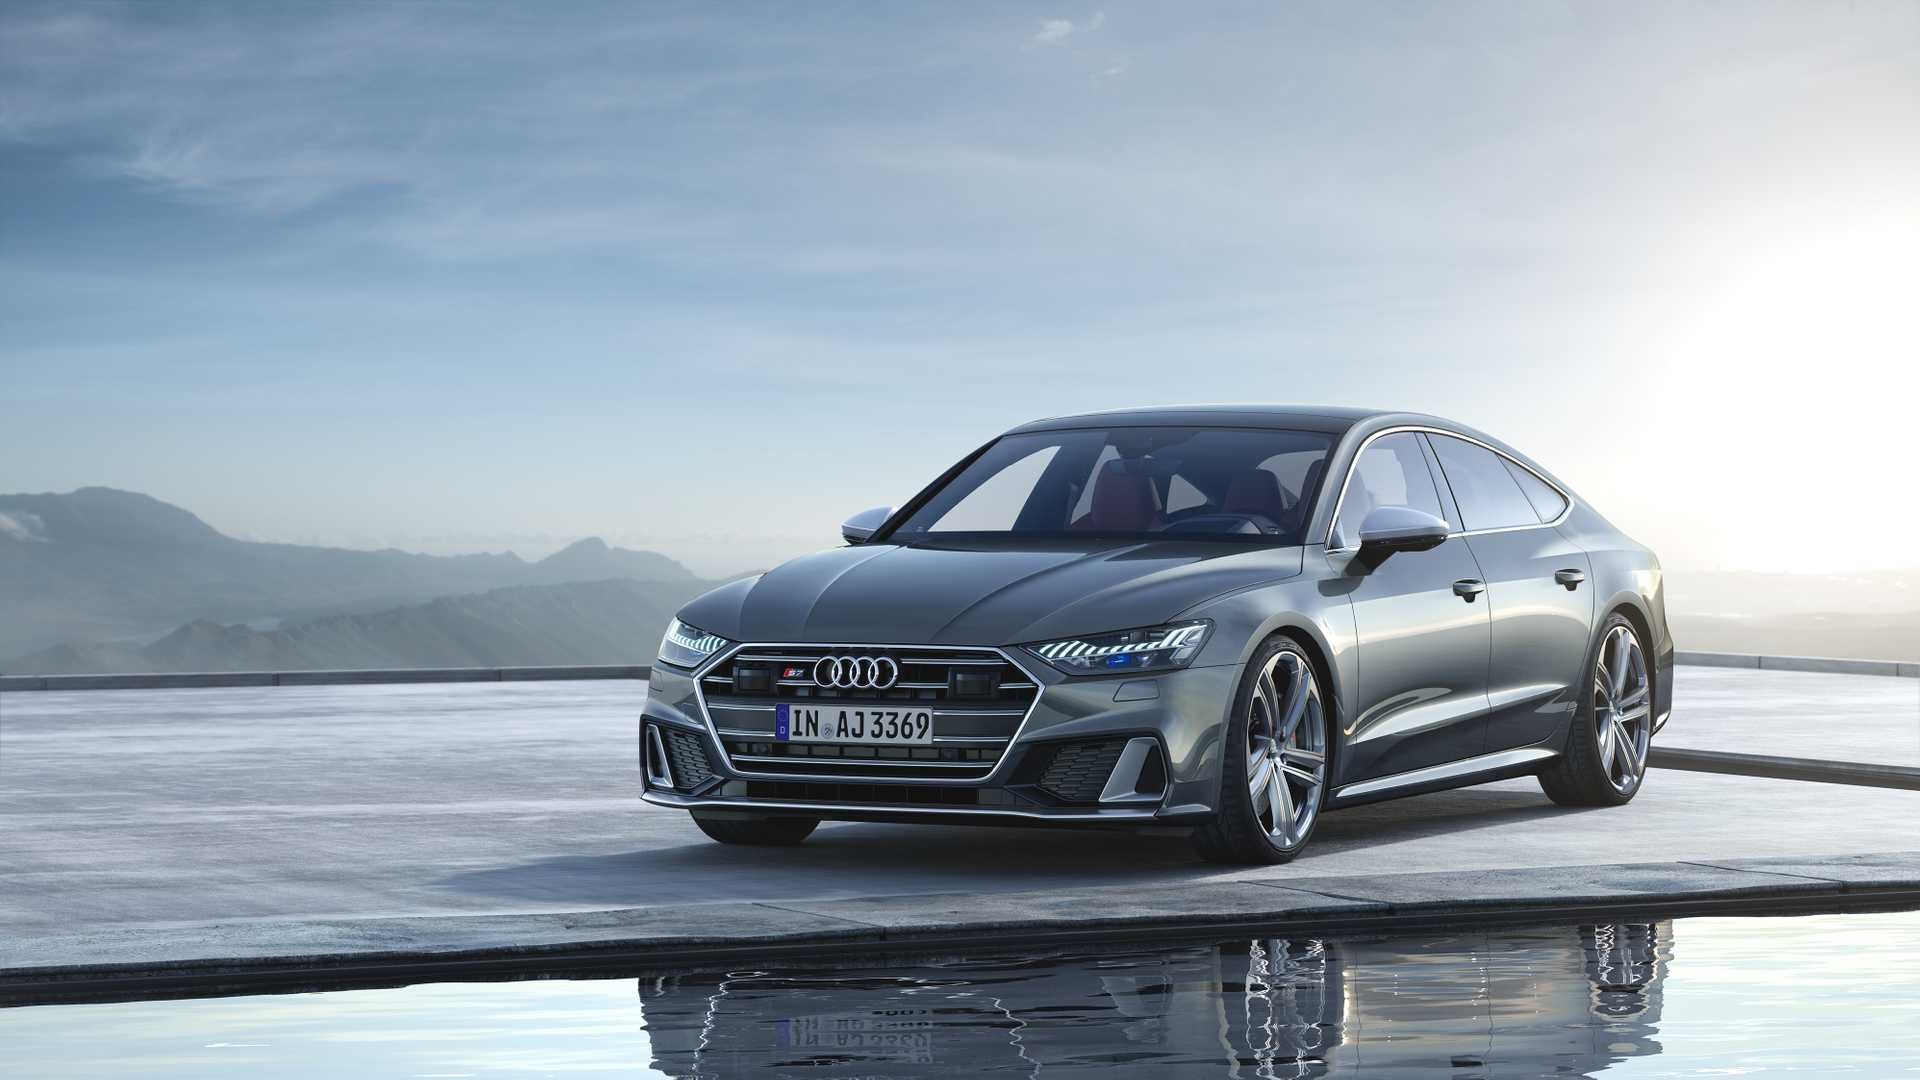 2019 Audi S7 Sportback TDI (Color: Daytona Grey) Front Three-Quarter Wallpapers (5)